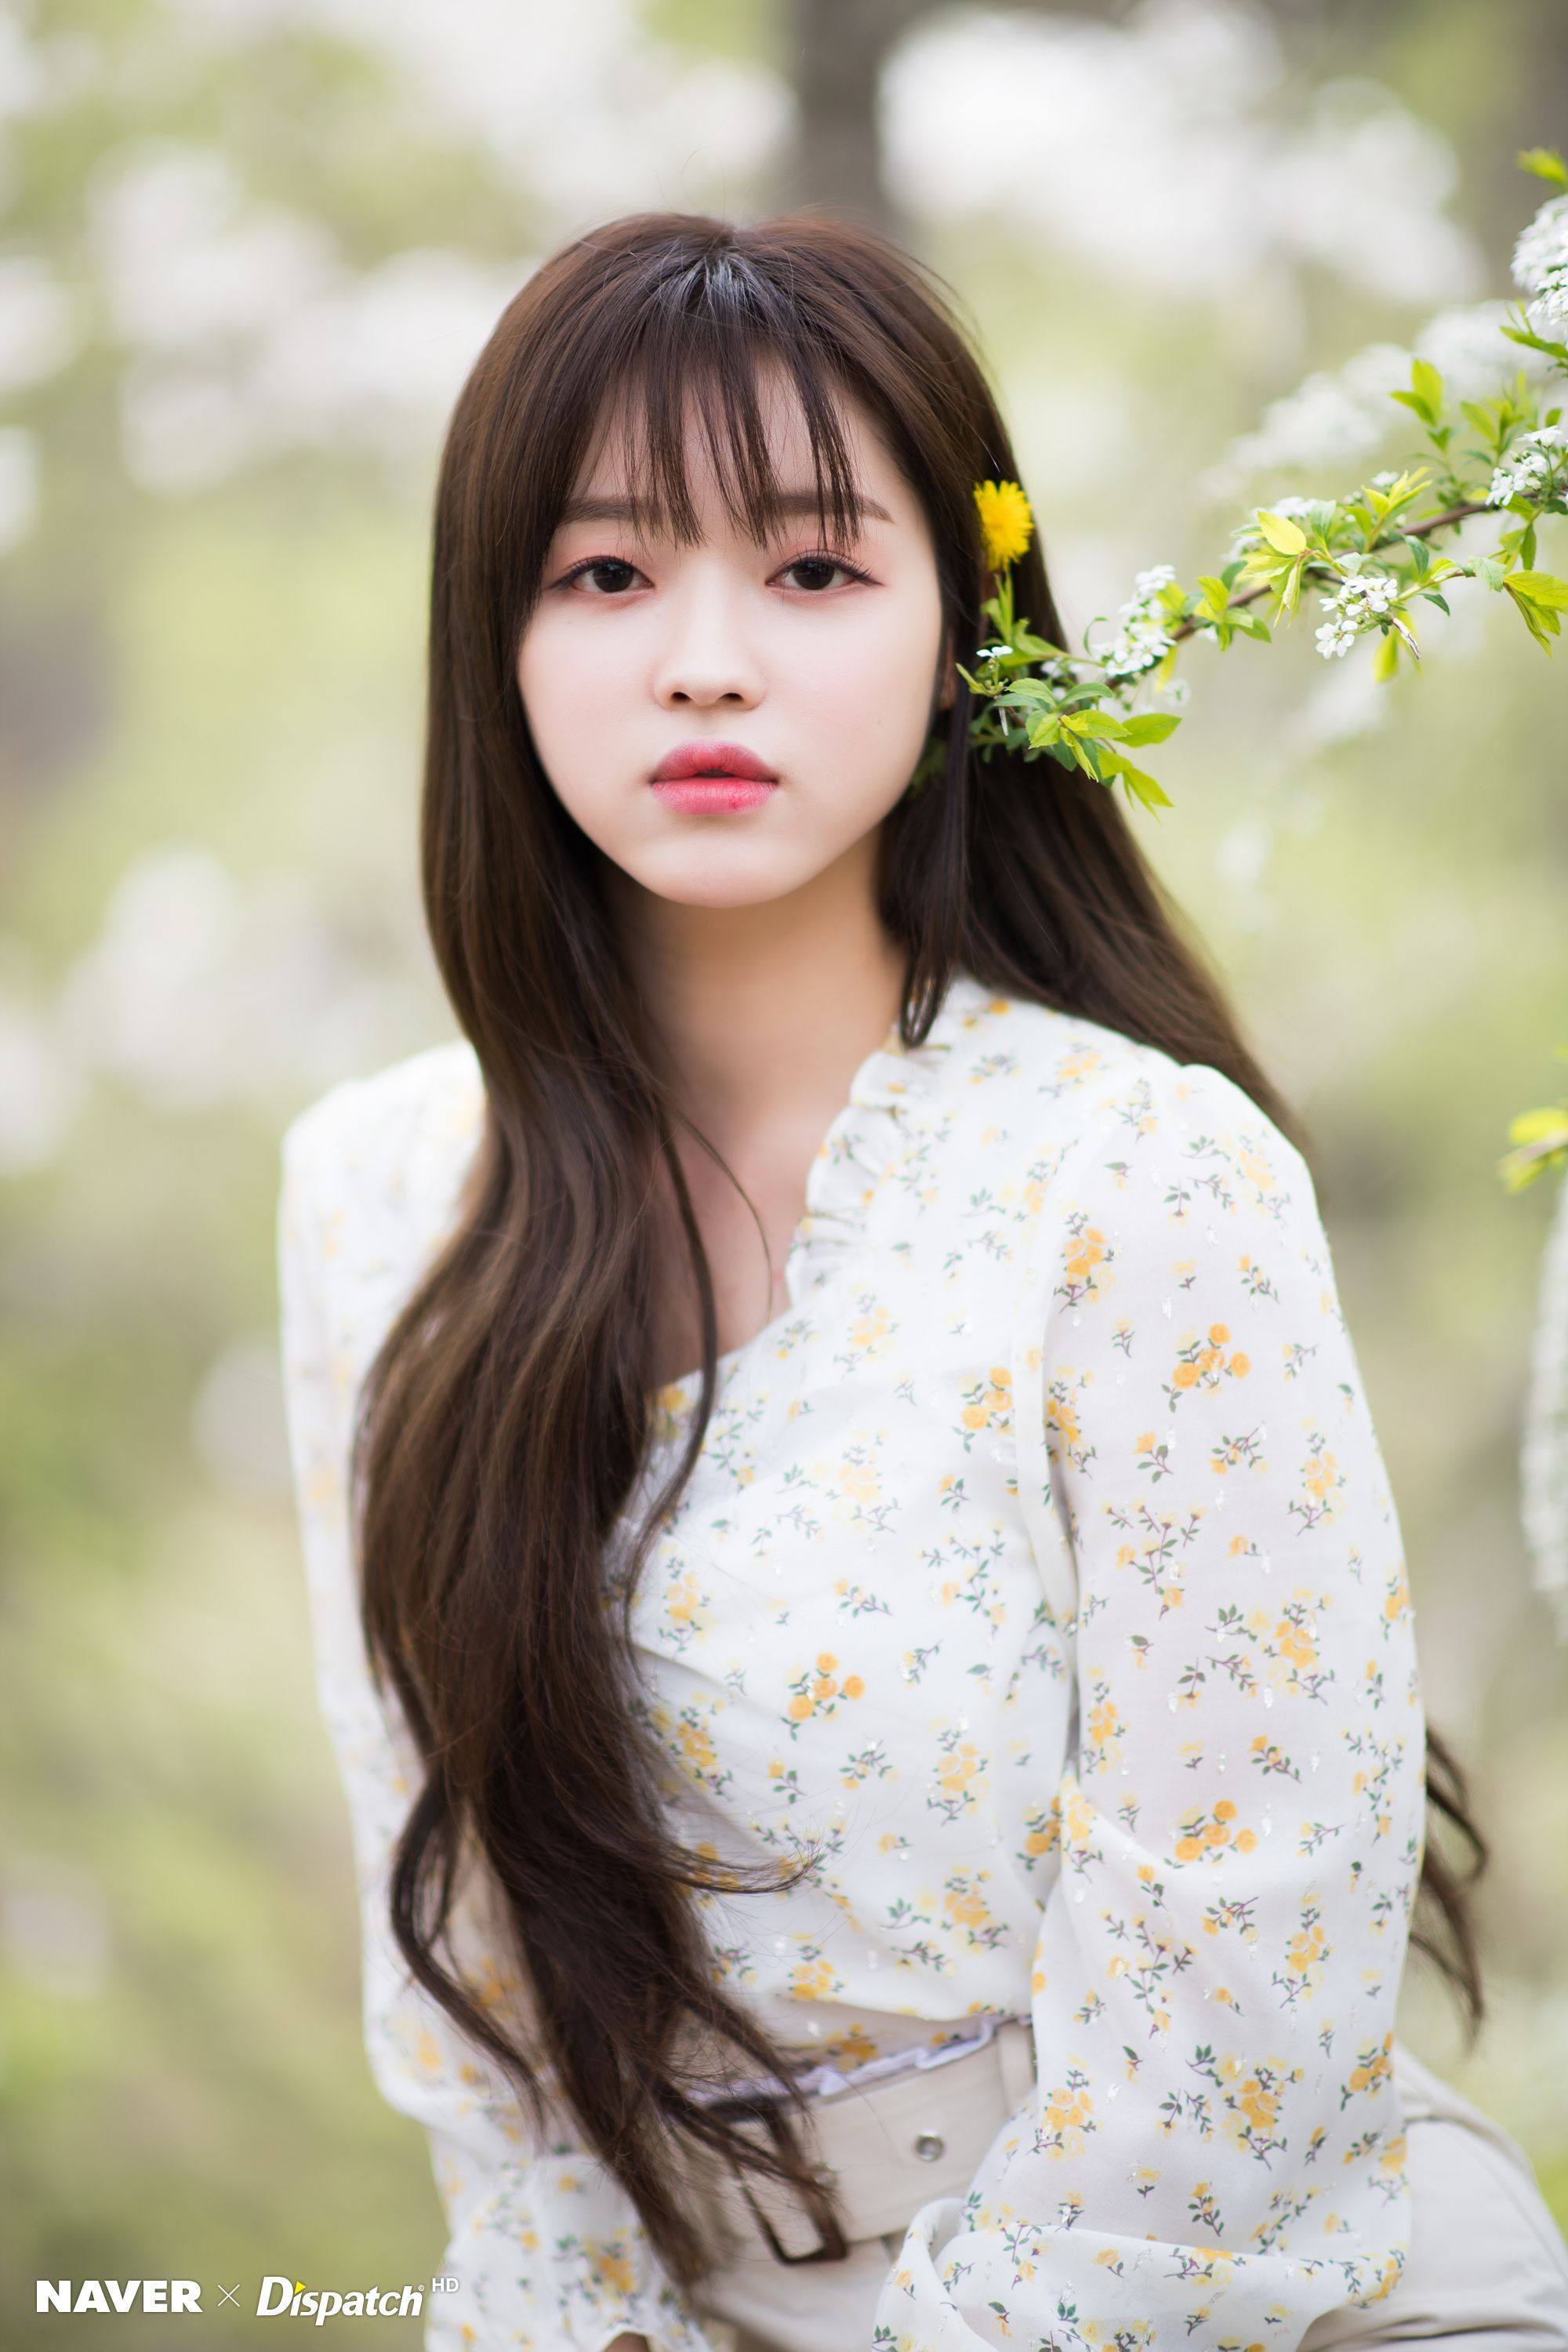 Oh My Girl Yooa The Fifth Season Promotion Photoshoot By Naver X Dispatch Oh My Girl Yooa My Girl Beauty Girl